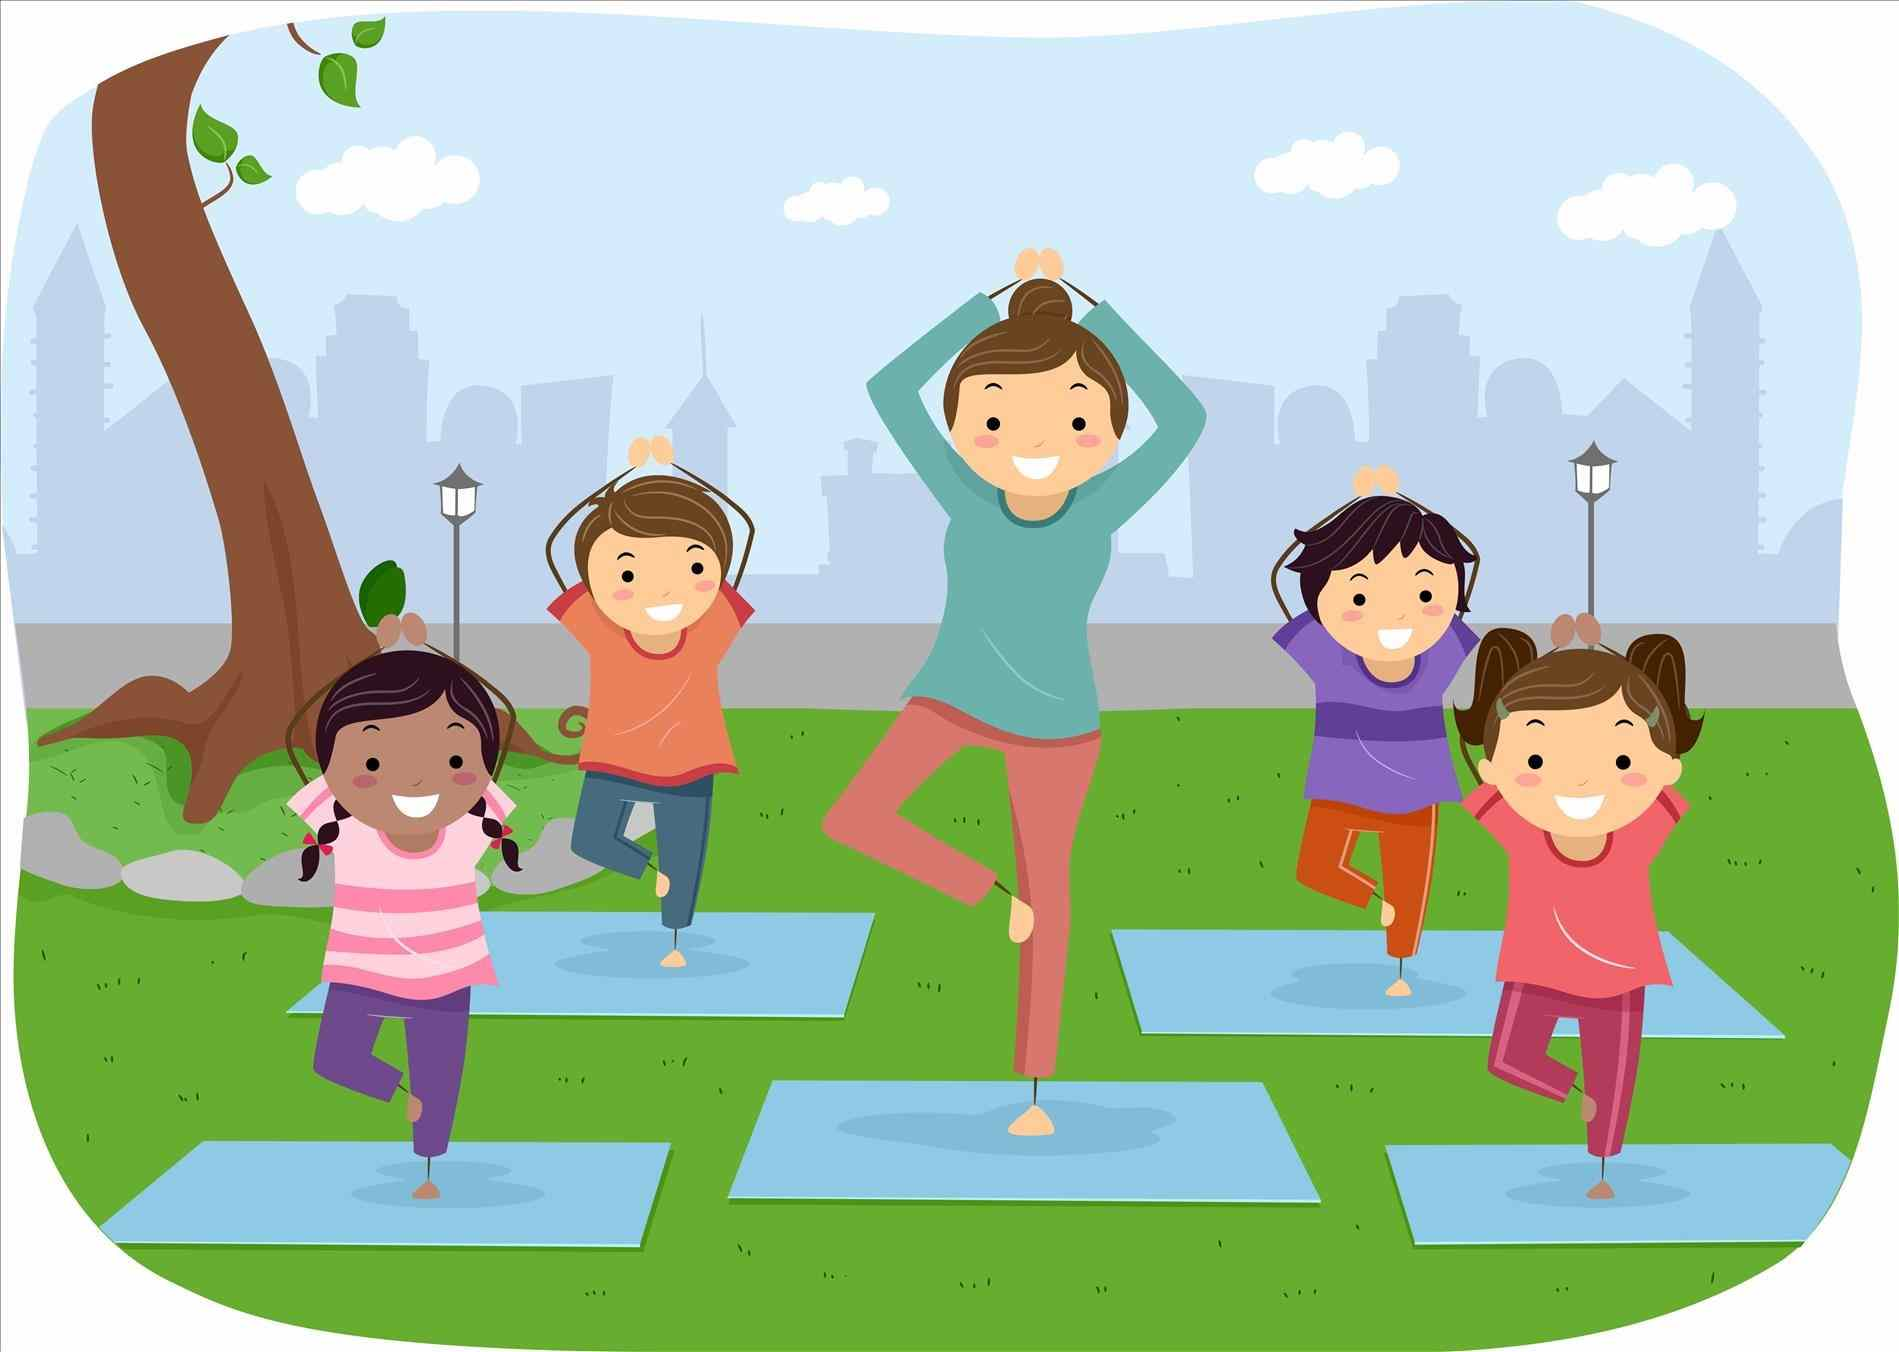 Visit family outdoor games clipart nh calendarpany picnic